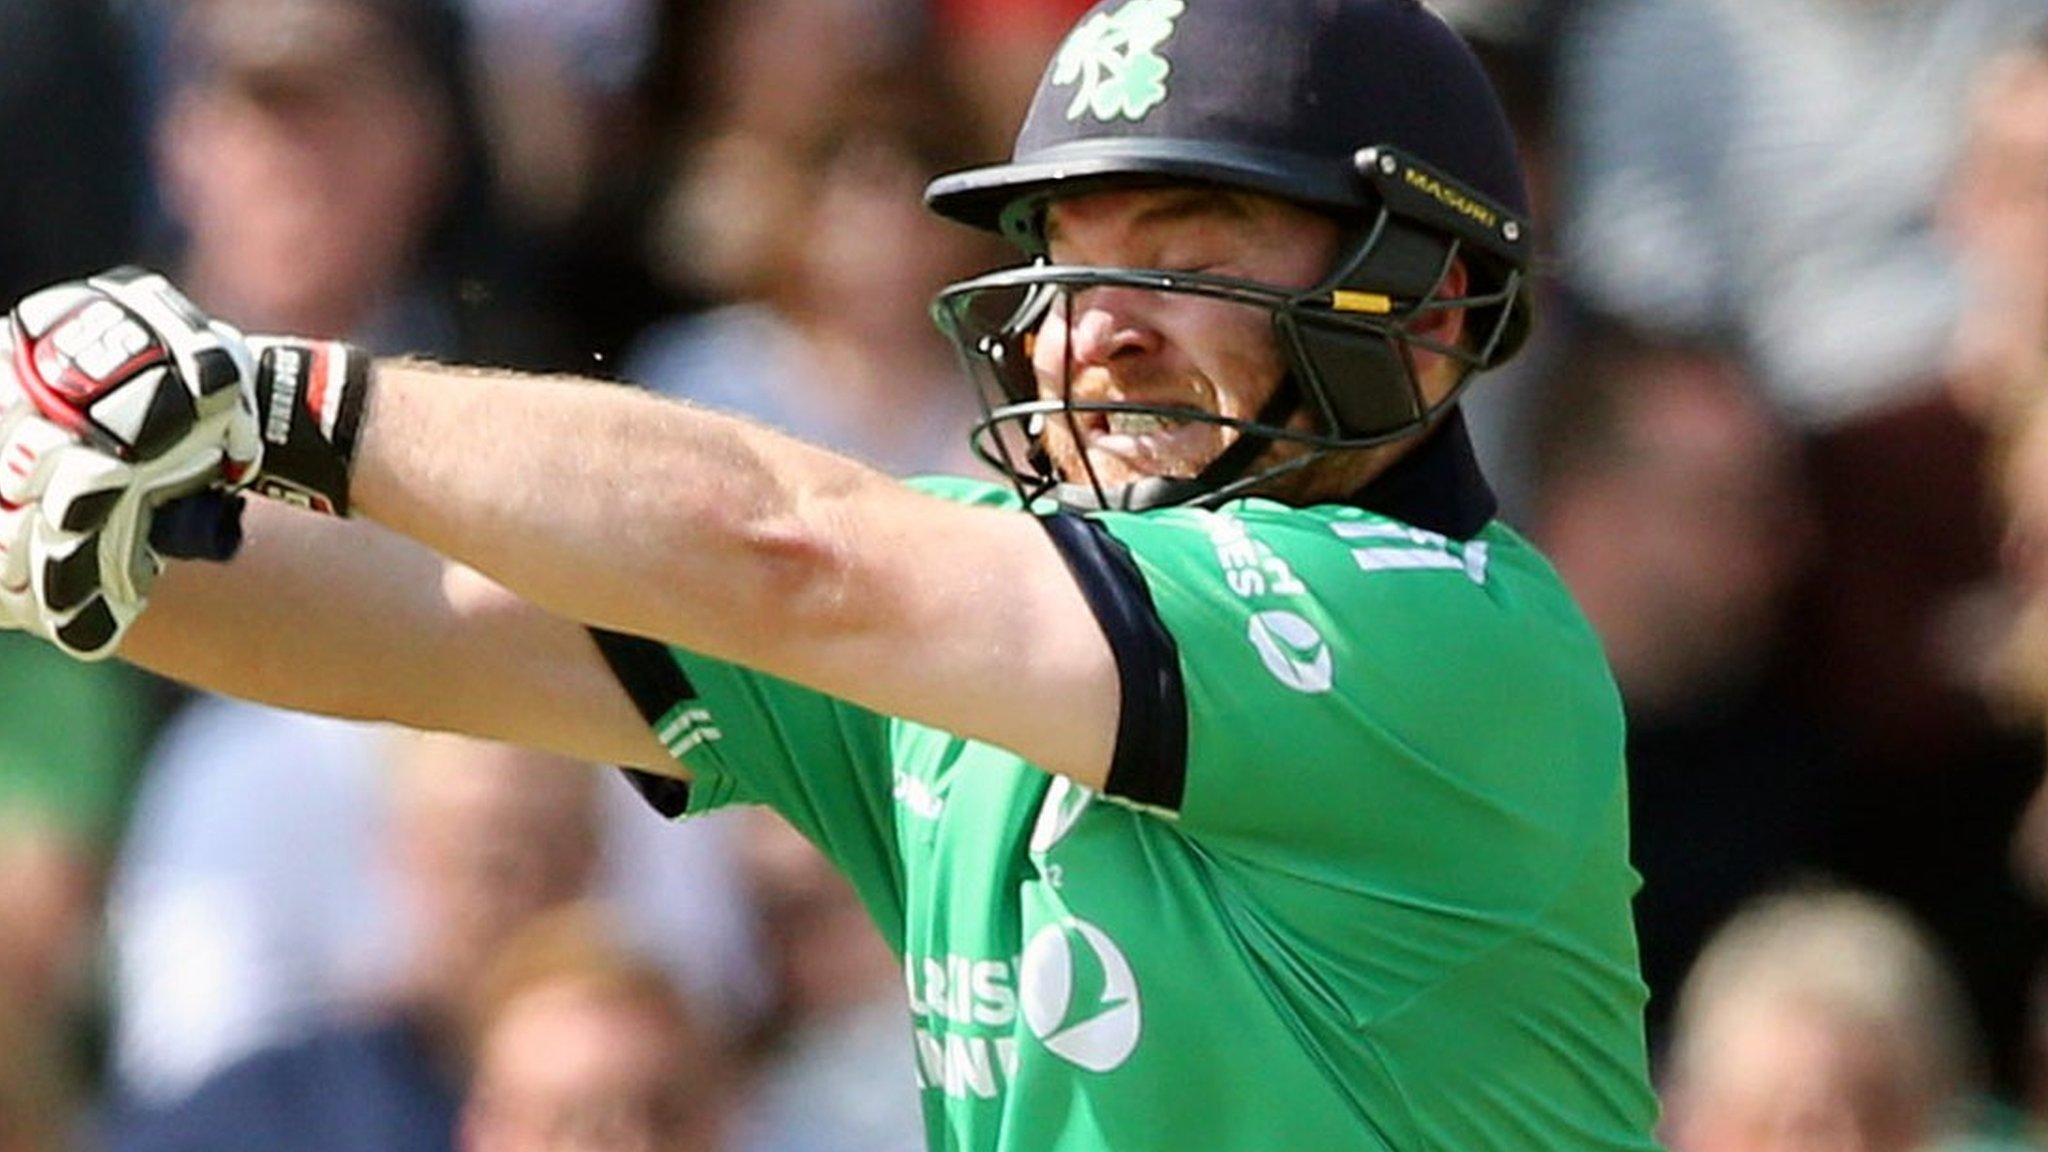 Netherlands Twenty20 Tri-series: Ireland and Scotland finish level on 185 runs